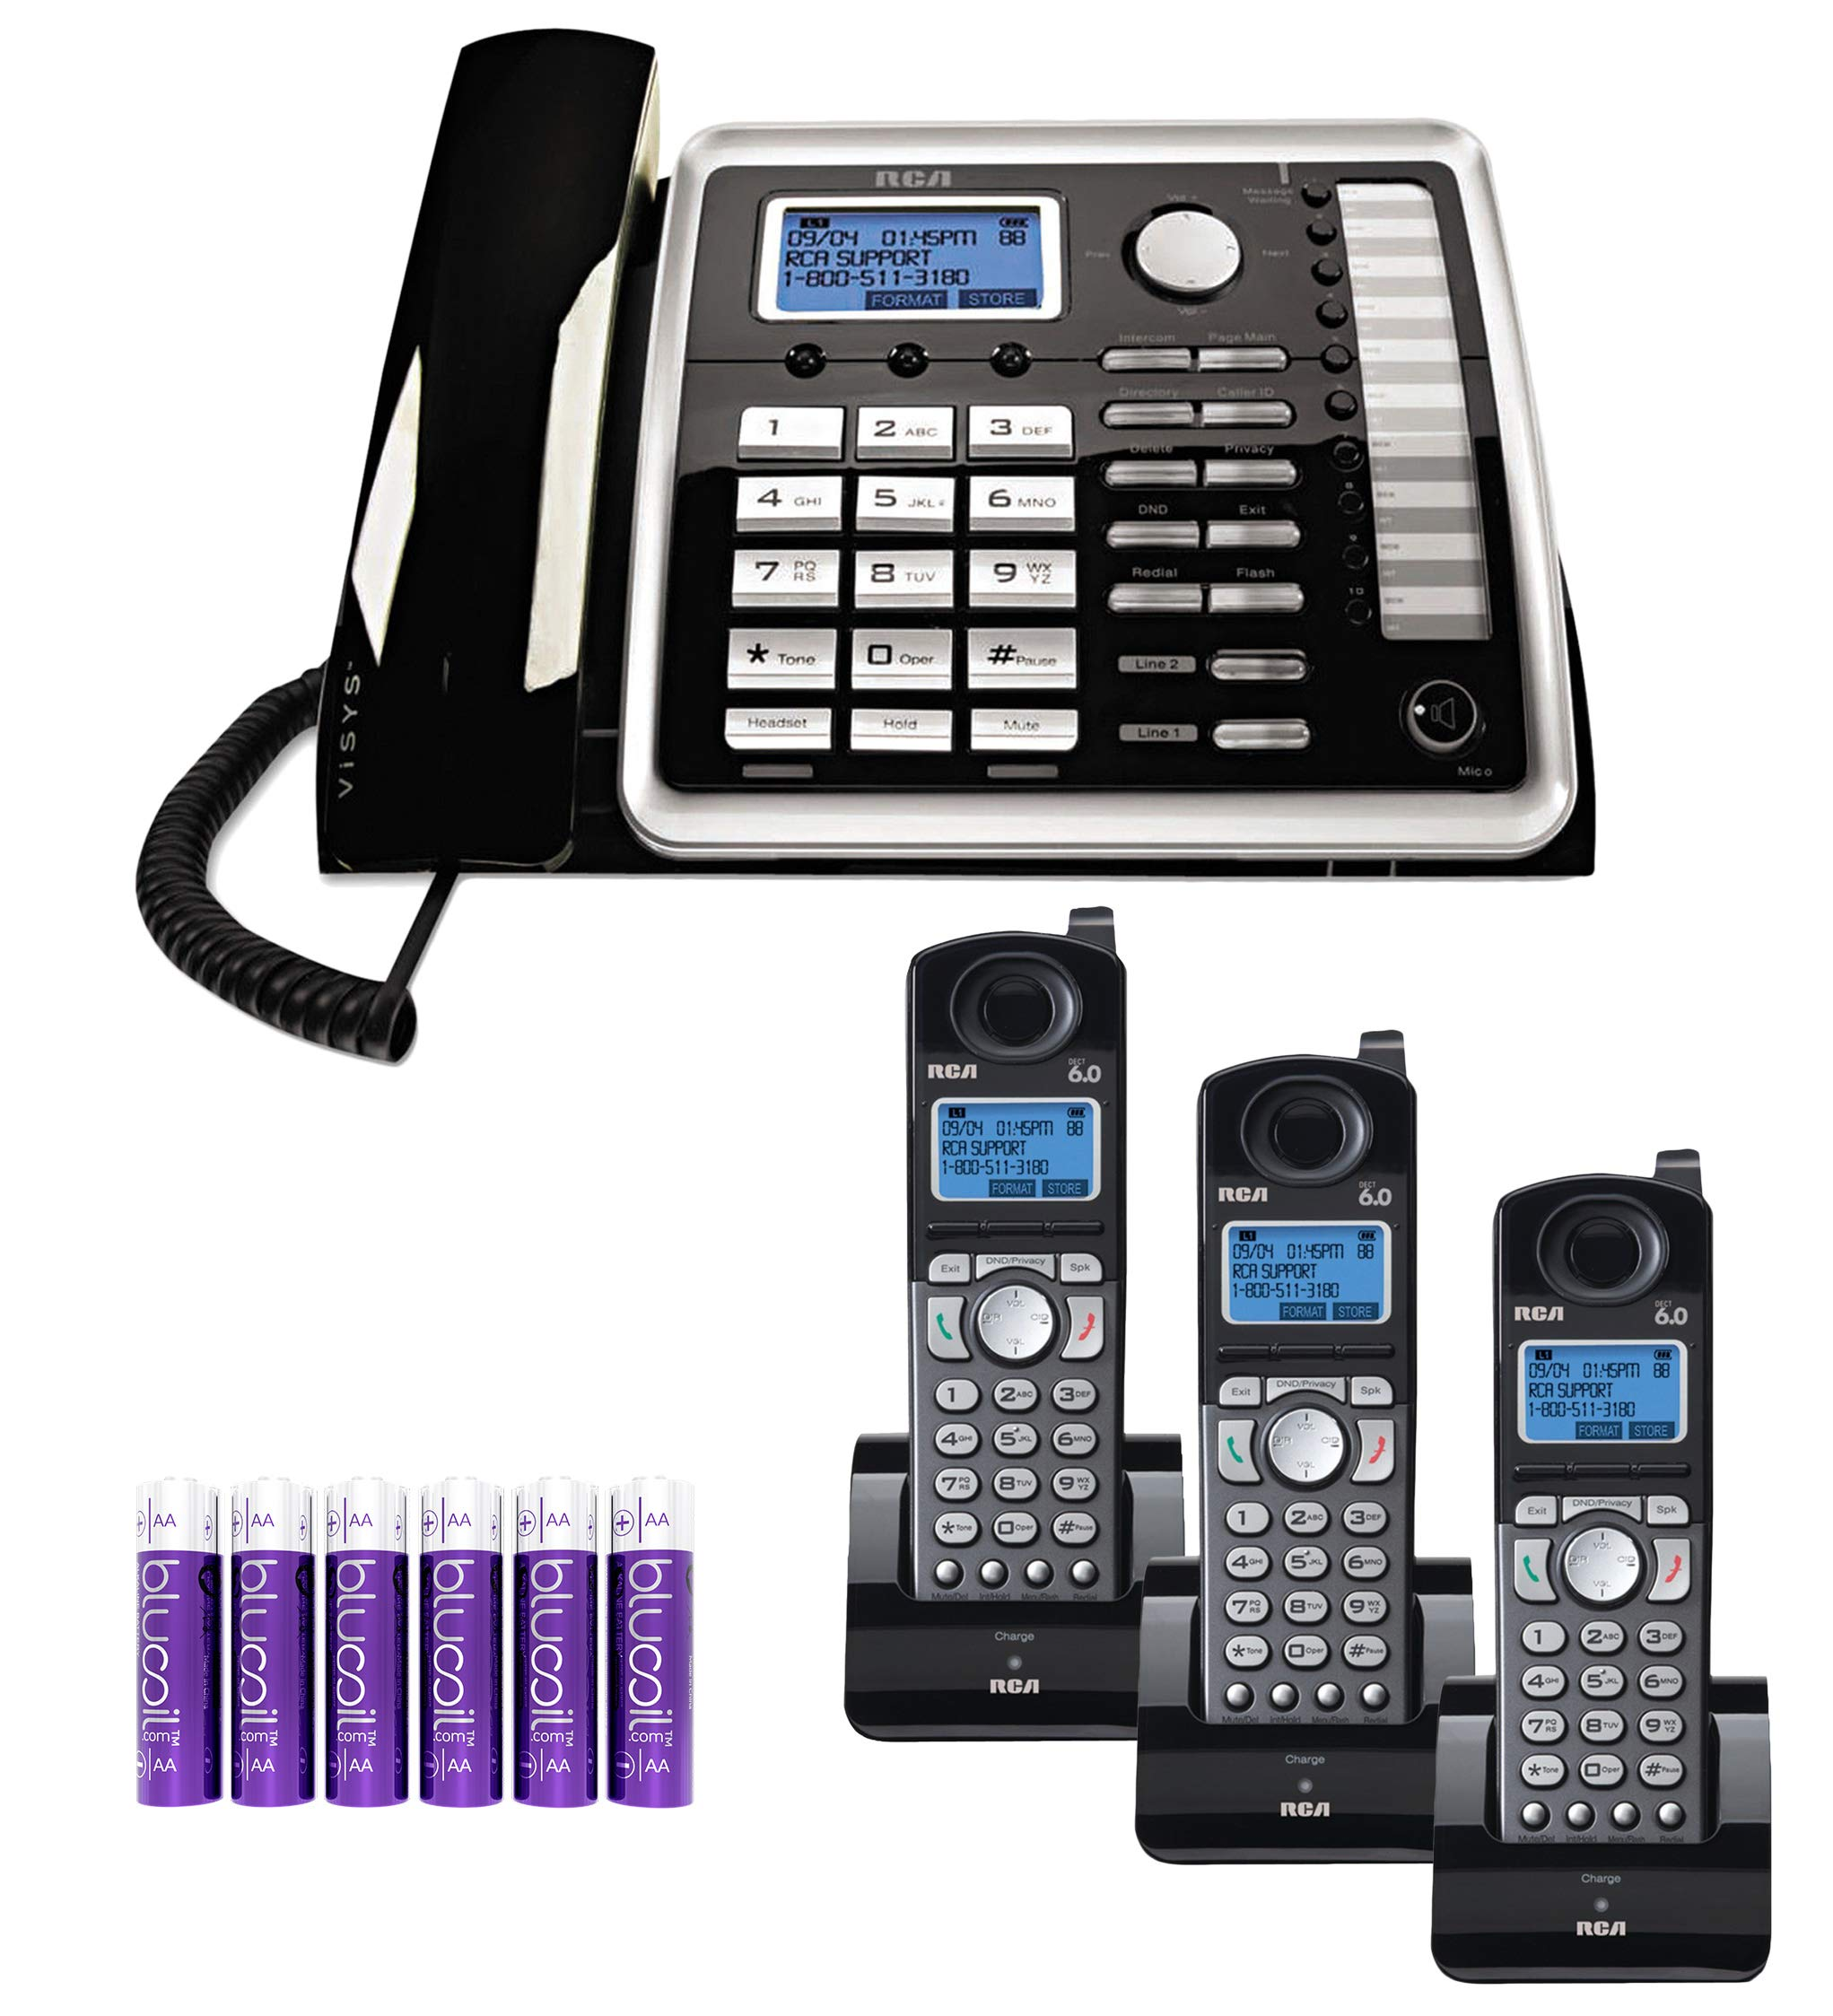 RCA 25260 2-Line Expandable Phone System - Full Duplex Telephone with Built-in Intercom Bundle with RCA 25055RE1 DECT 6.0 Cordless Accessory Handsets (3-Pack) and 6 Blucoil AA Batteries by blucoil (Image #1)